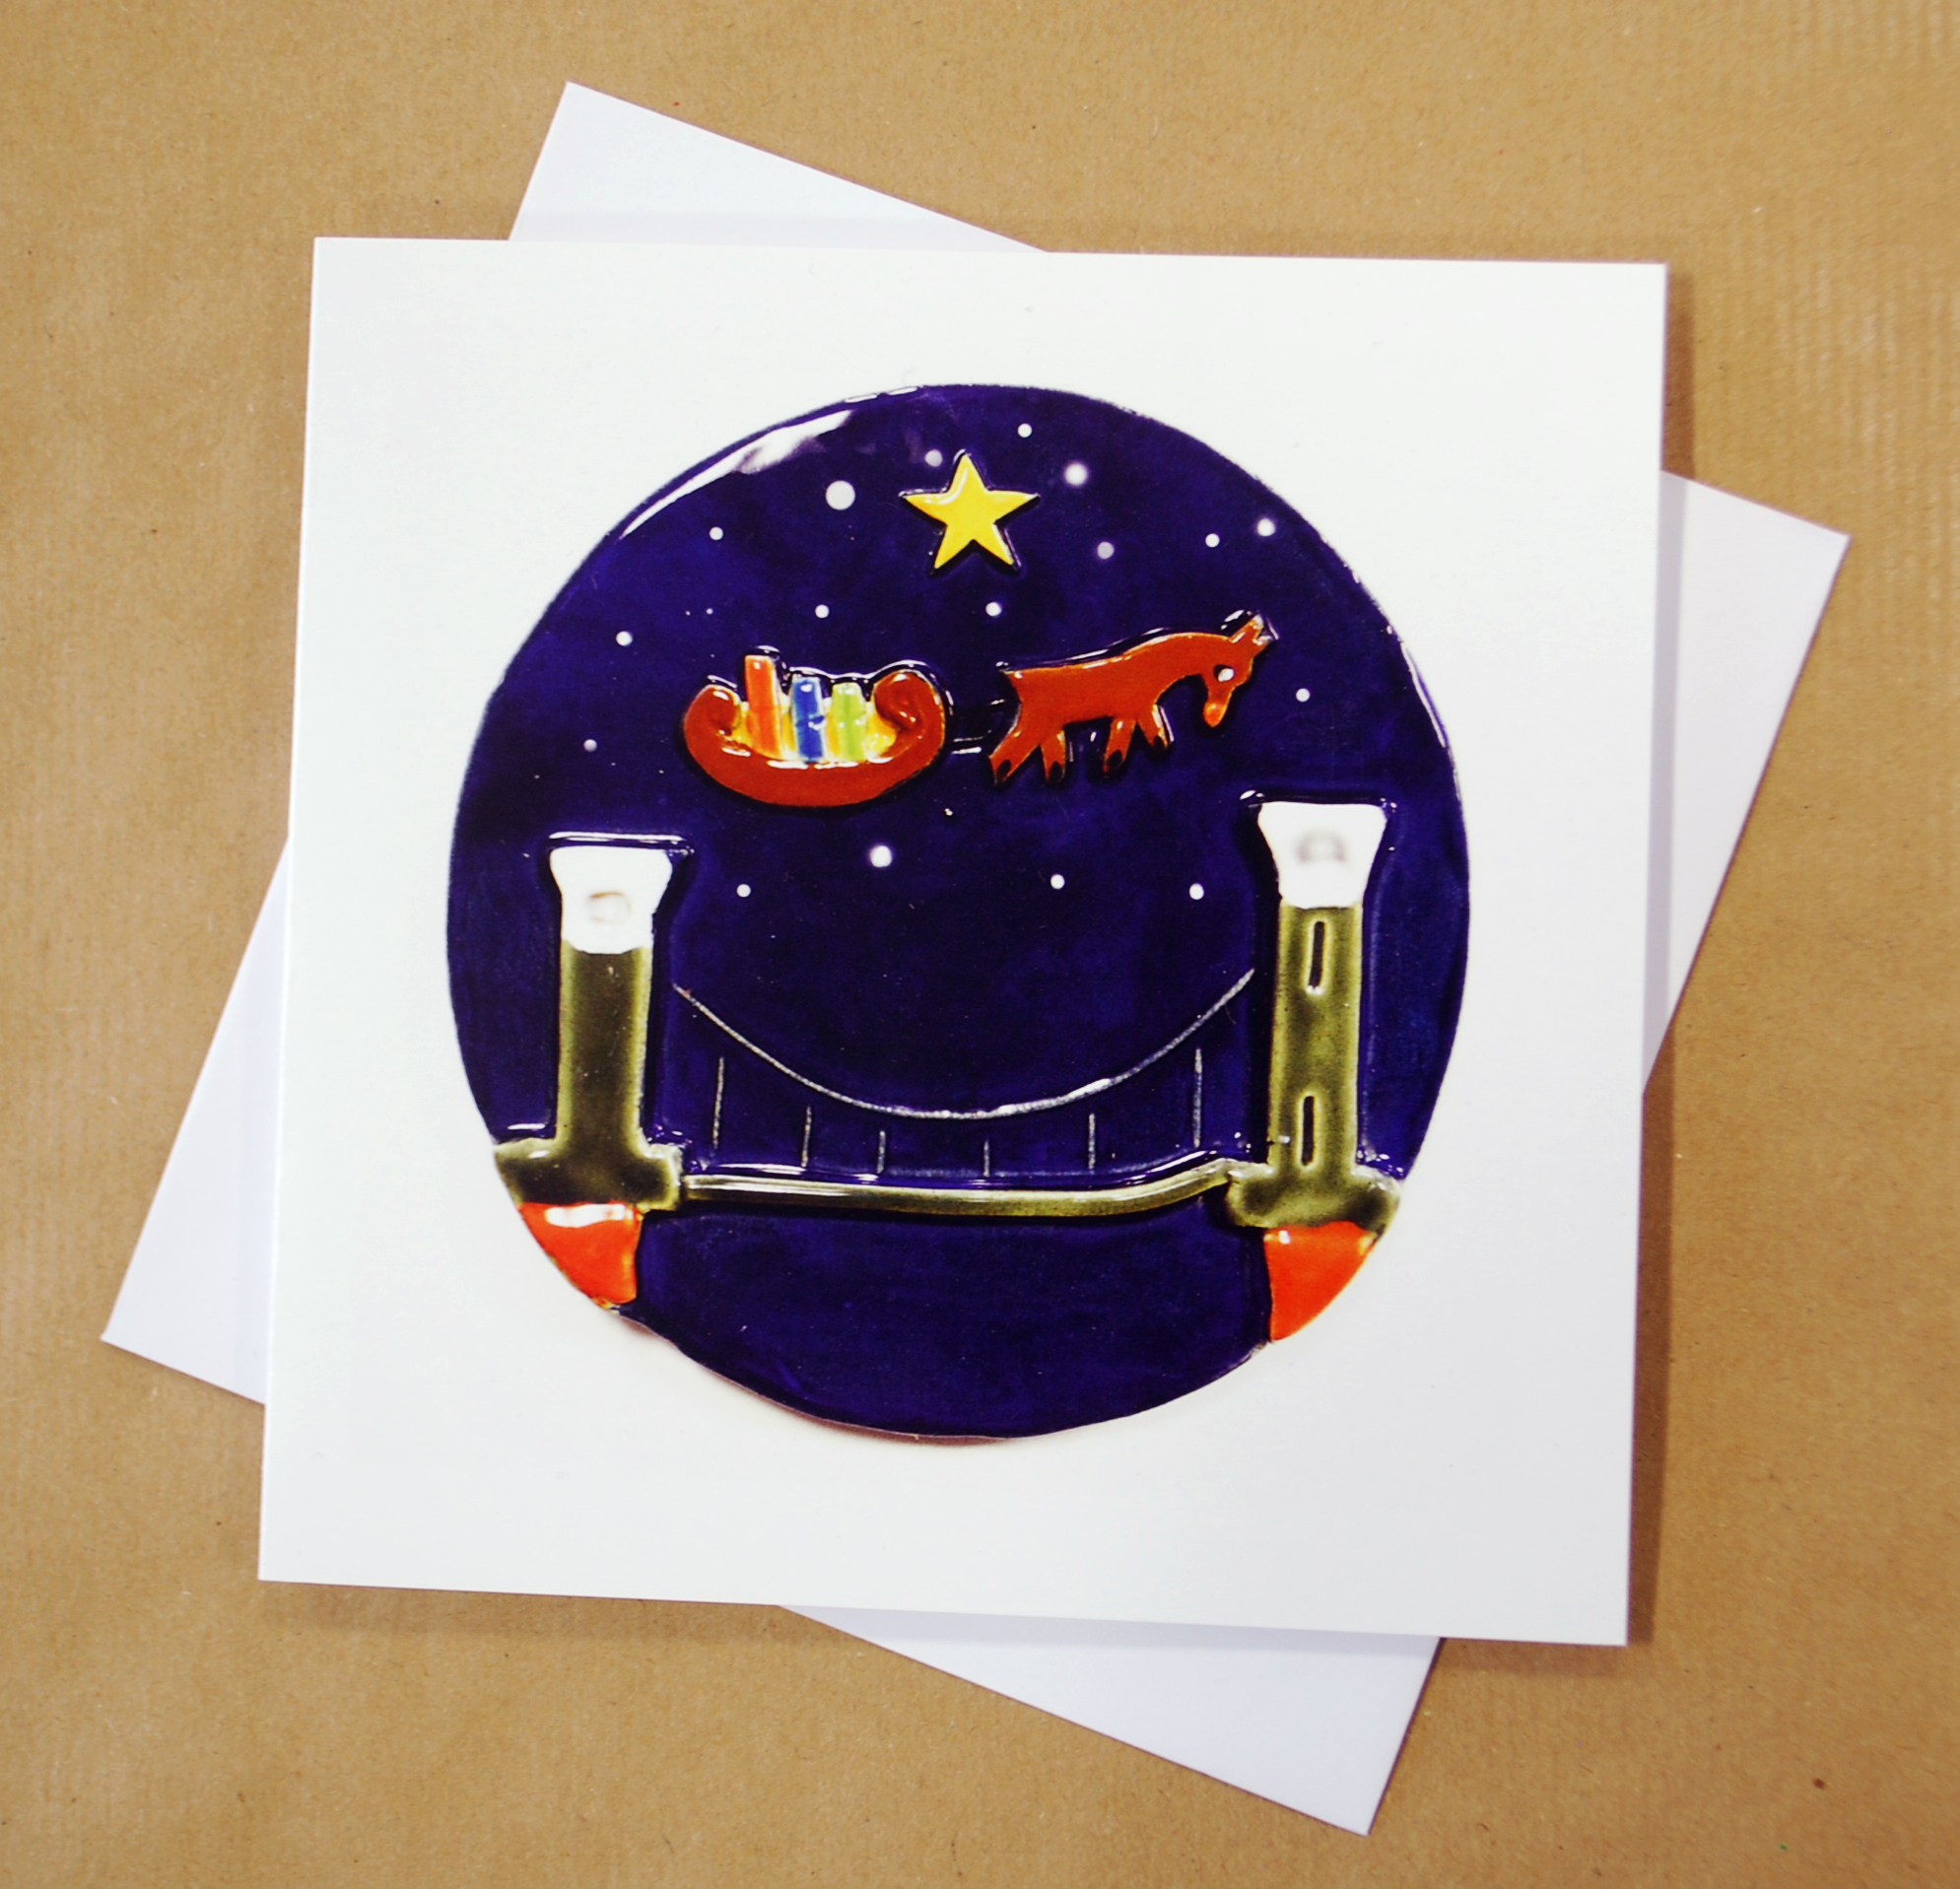 Round Tile Christmas Card Made By Banwell Pottery, Brandon